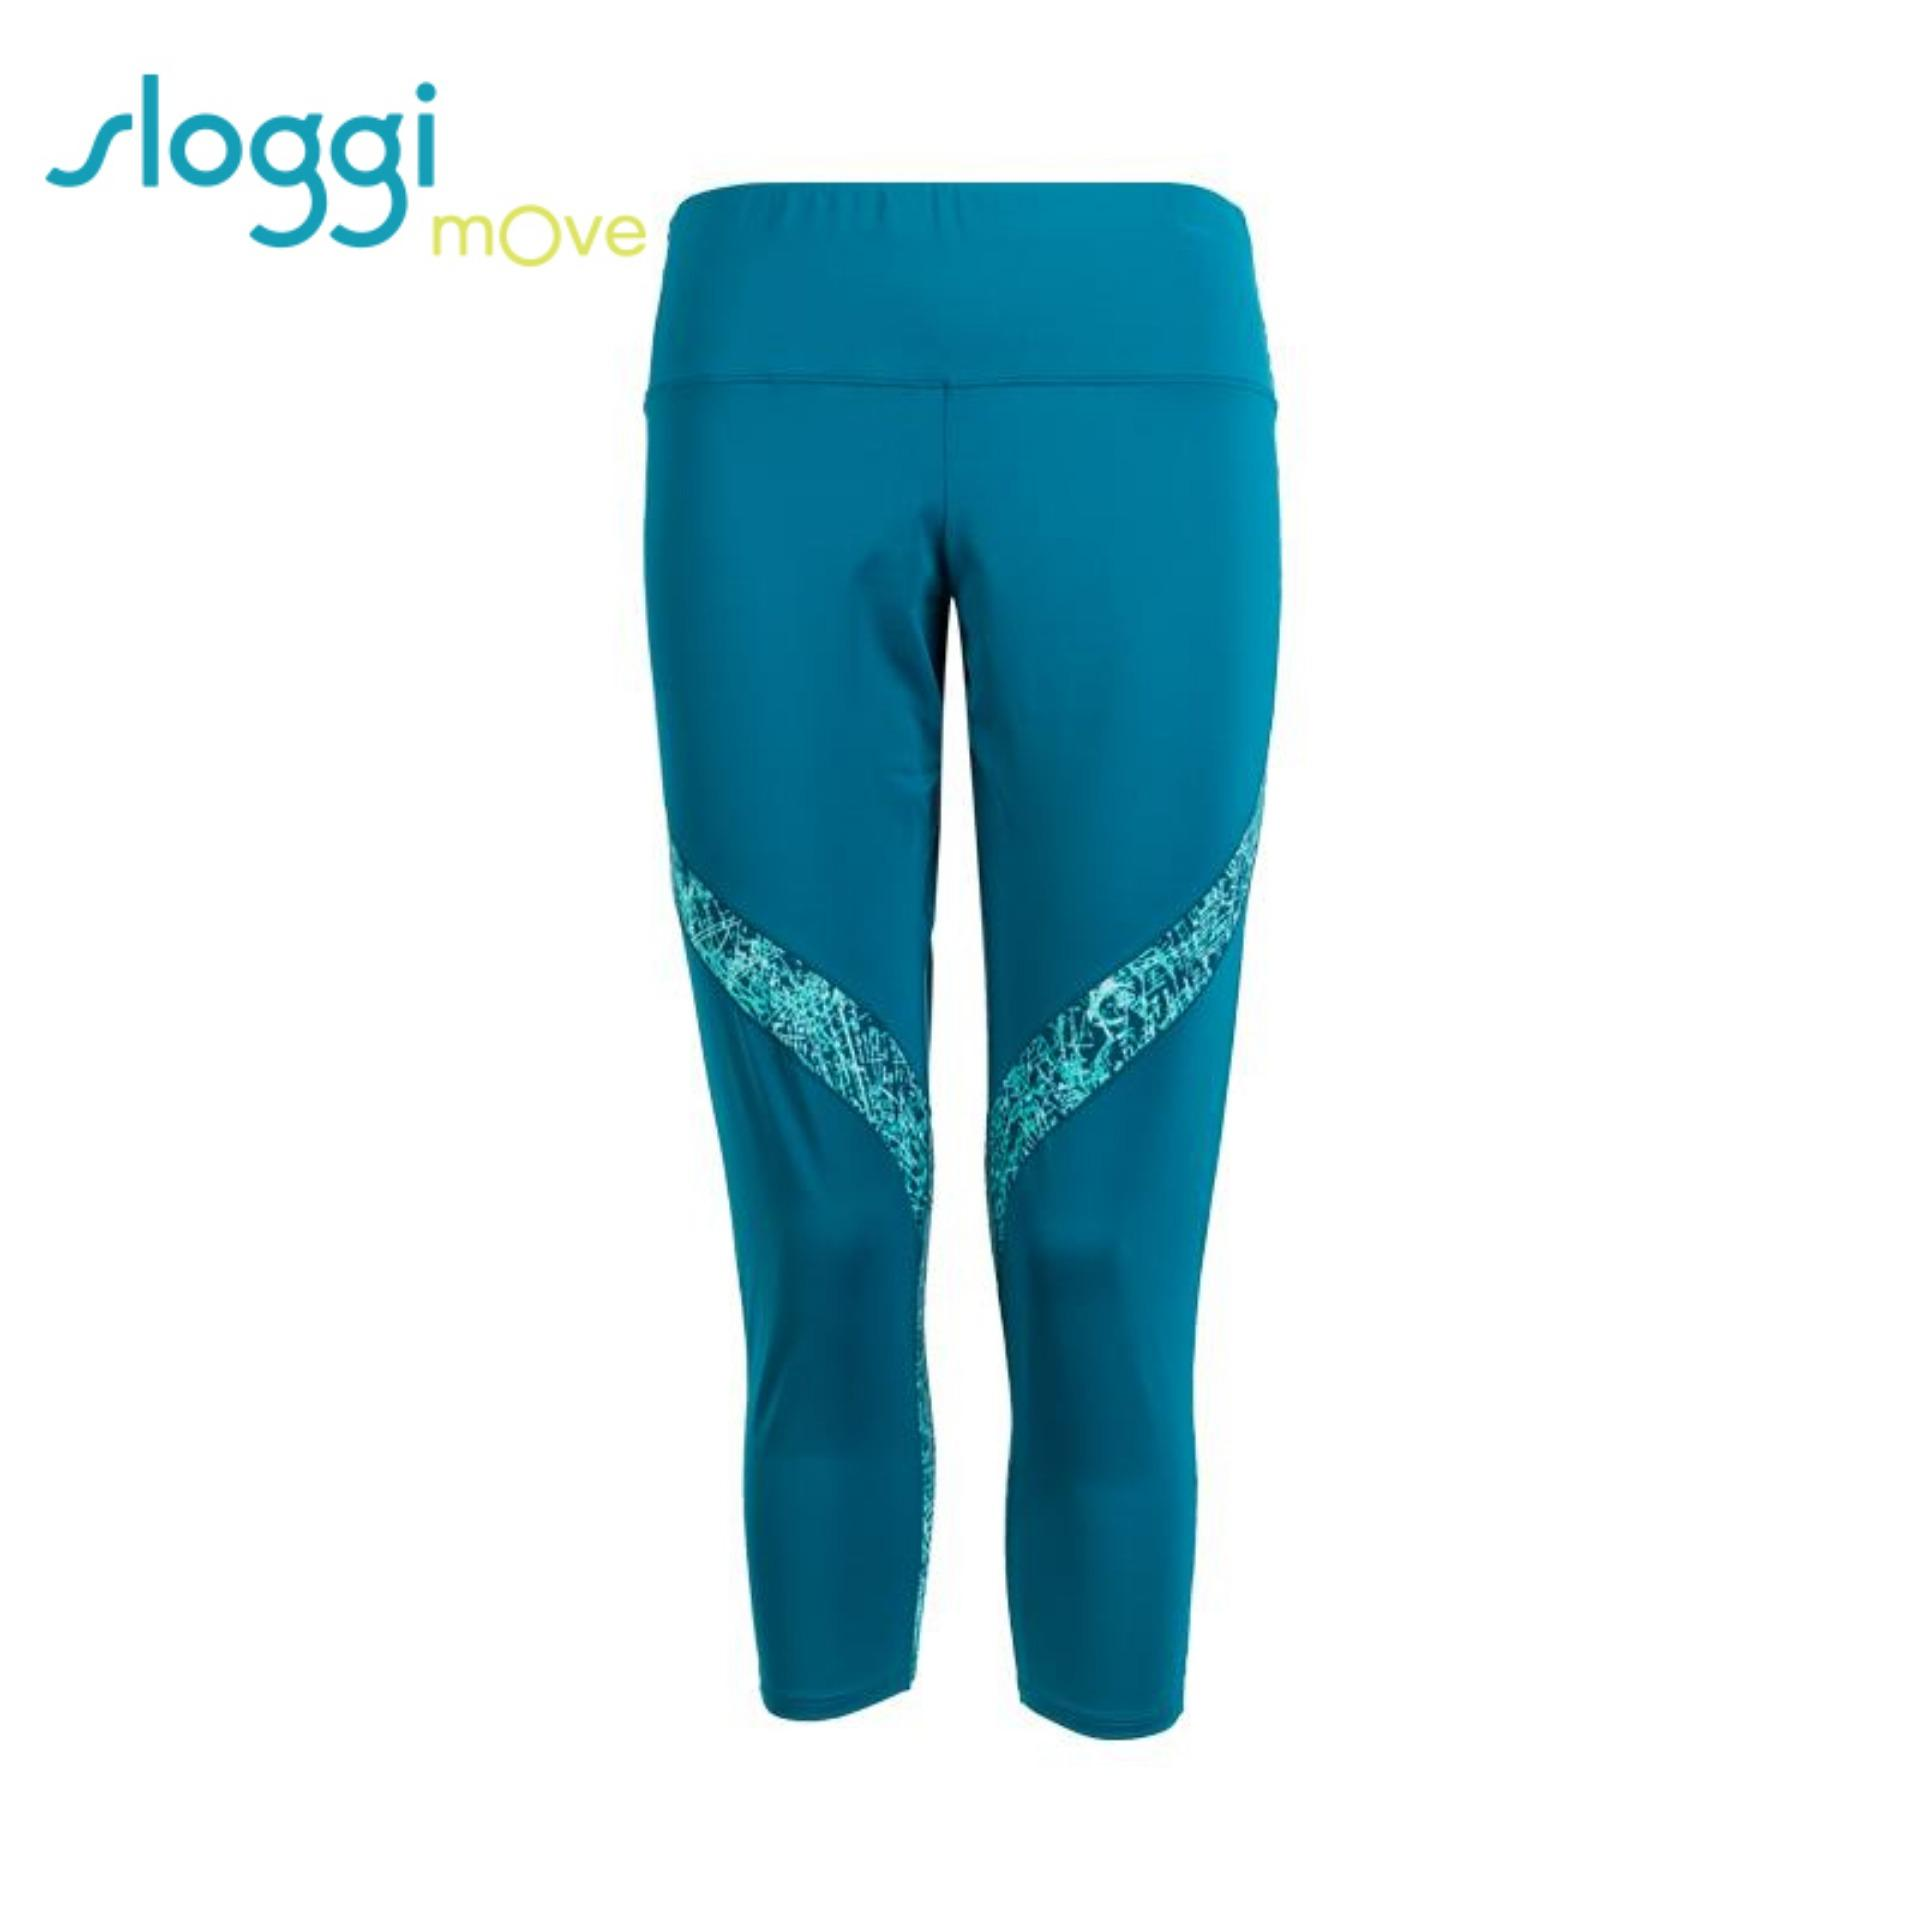 974fd0ebaf0ce Sloggi Move Flow Light Capri Pants in Turquoise Dark Combination